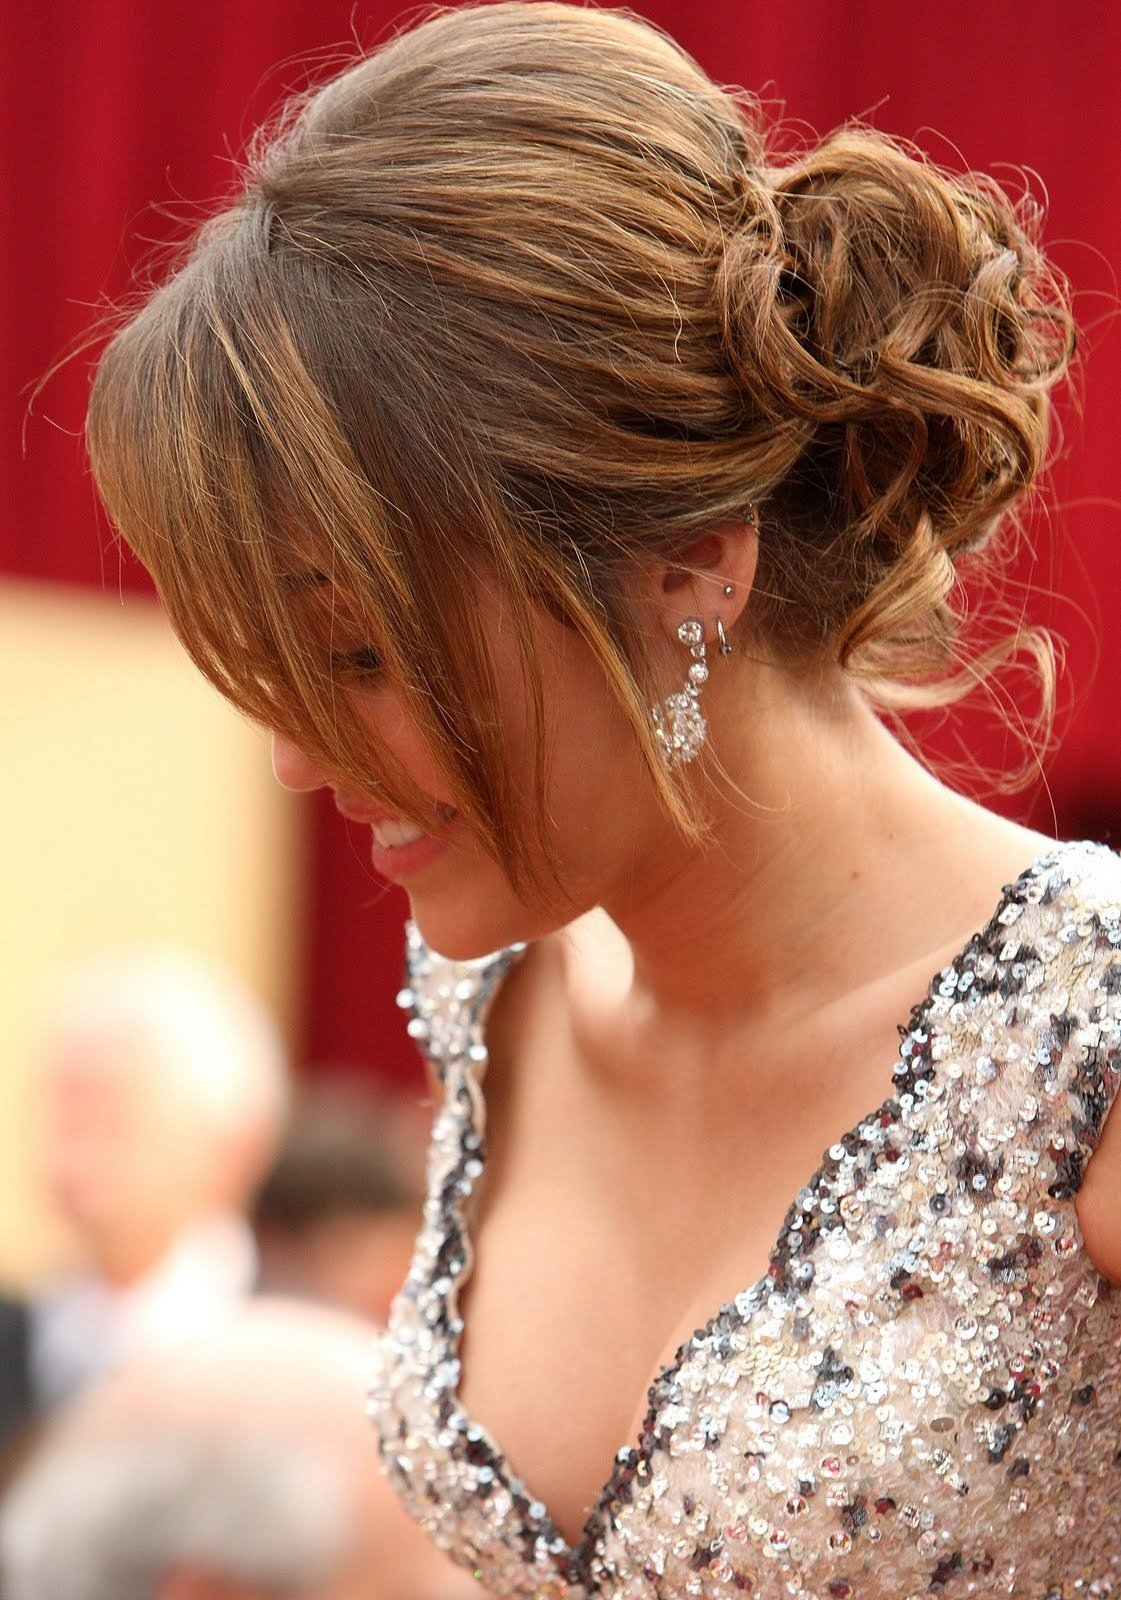 New 15 Cute Hairstyles For Prom 2014 Ideas With Pictures